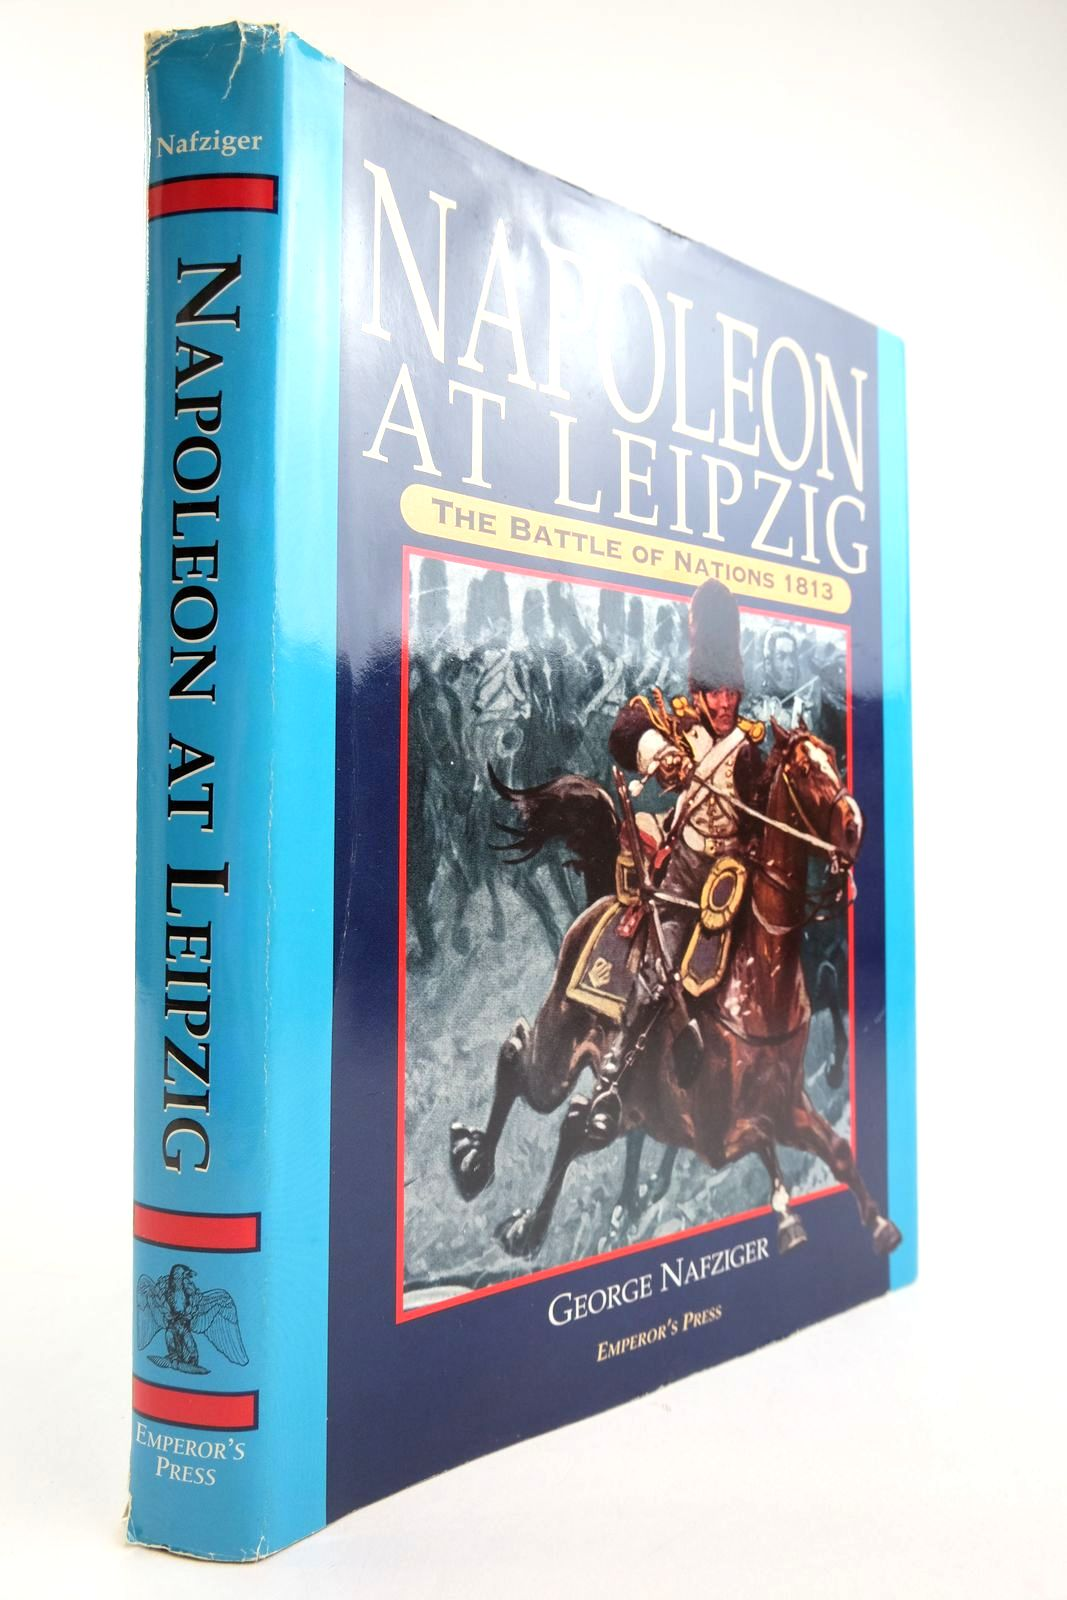 Photo of NAPOLEON AT LEIPZIG: THE BATTLE OF NATIONS 1813- Stock Number: 2134158